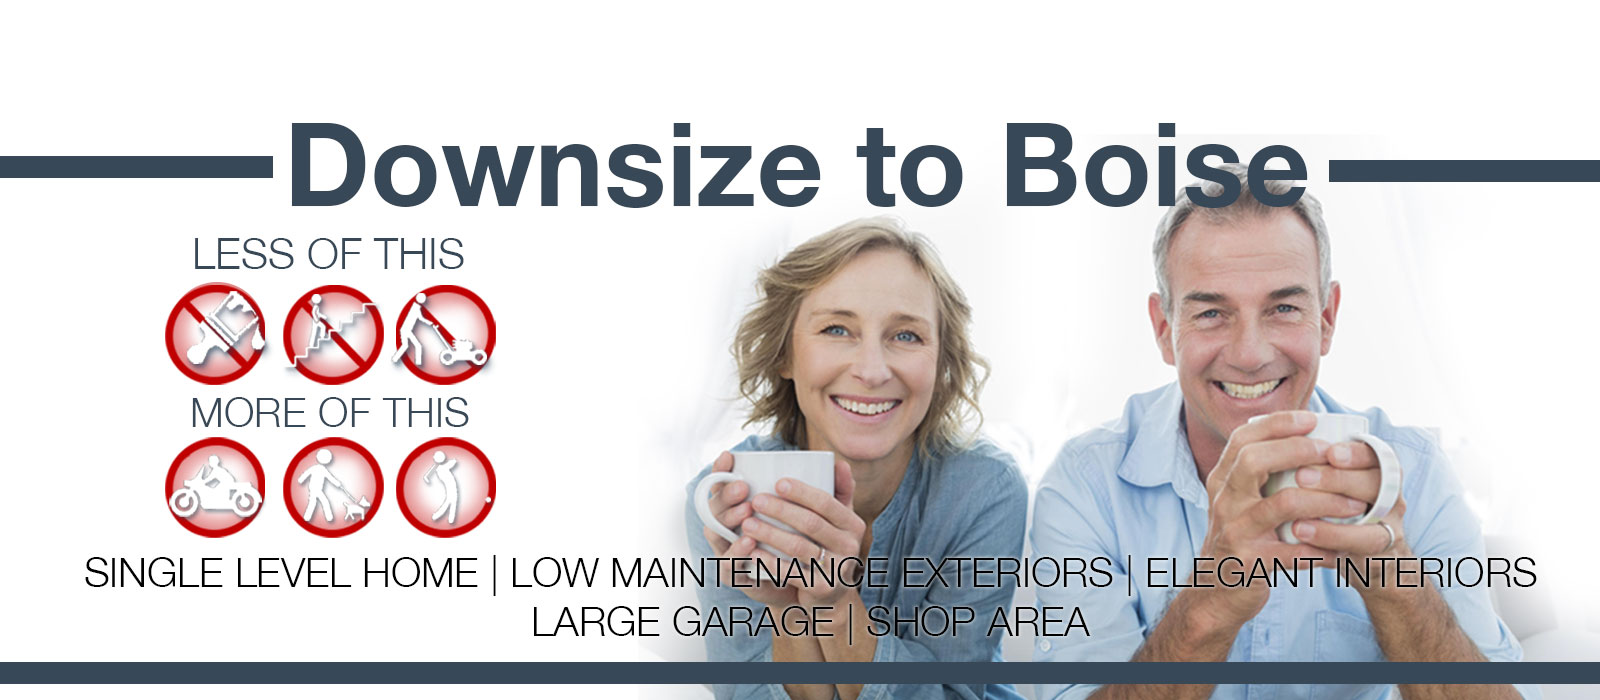 Downsize Homes in Boise Idaho